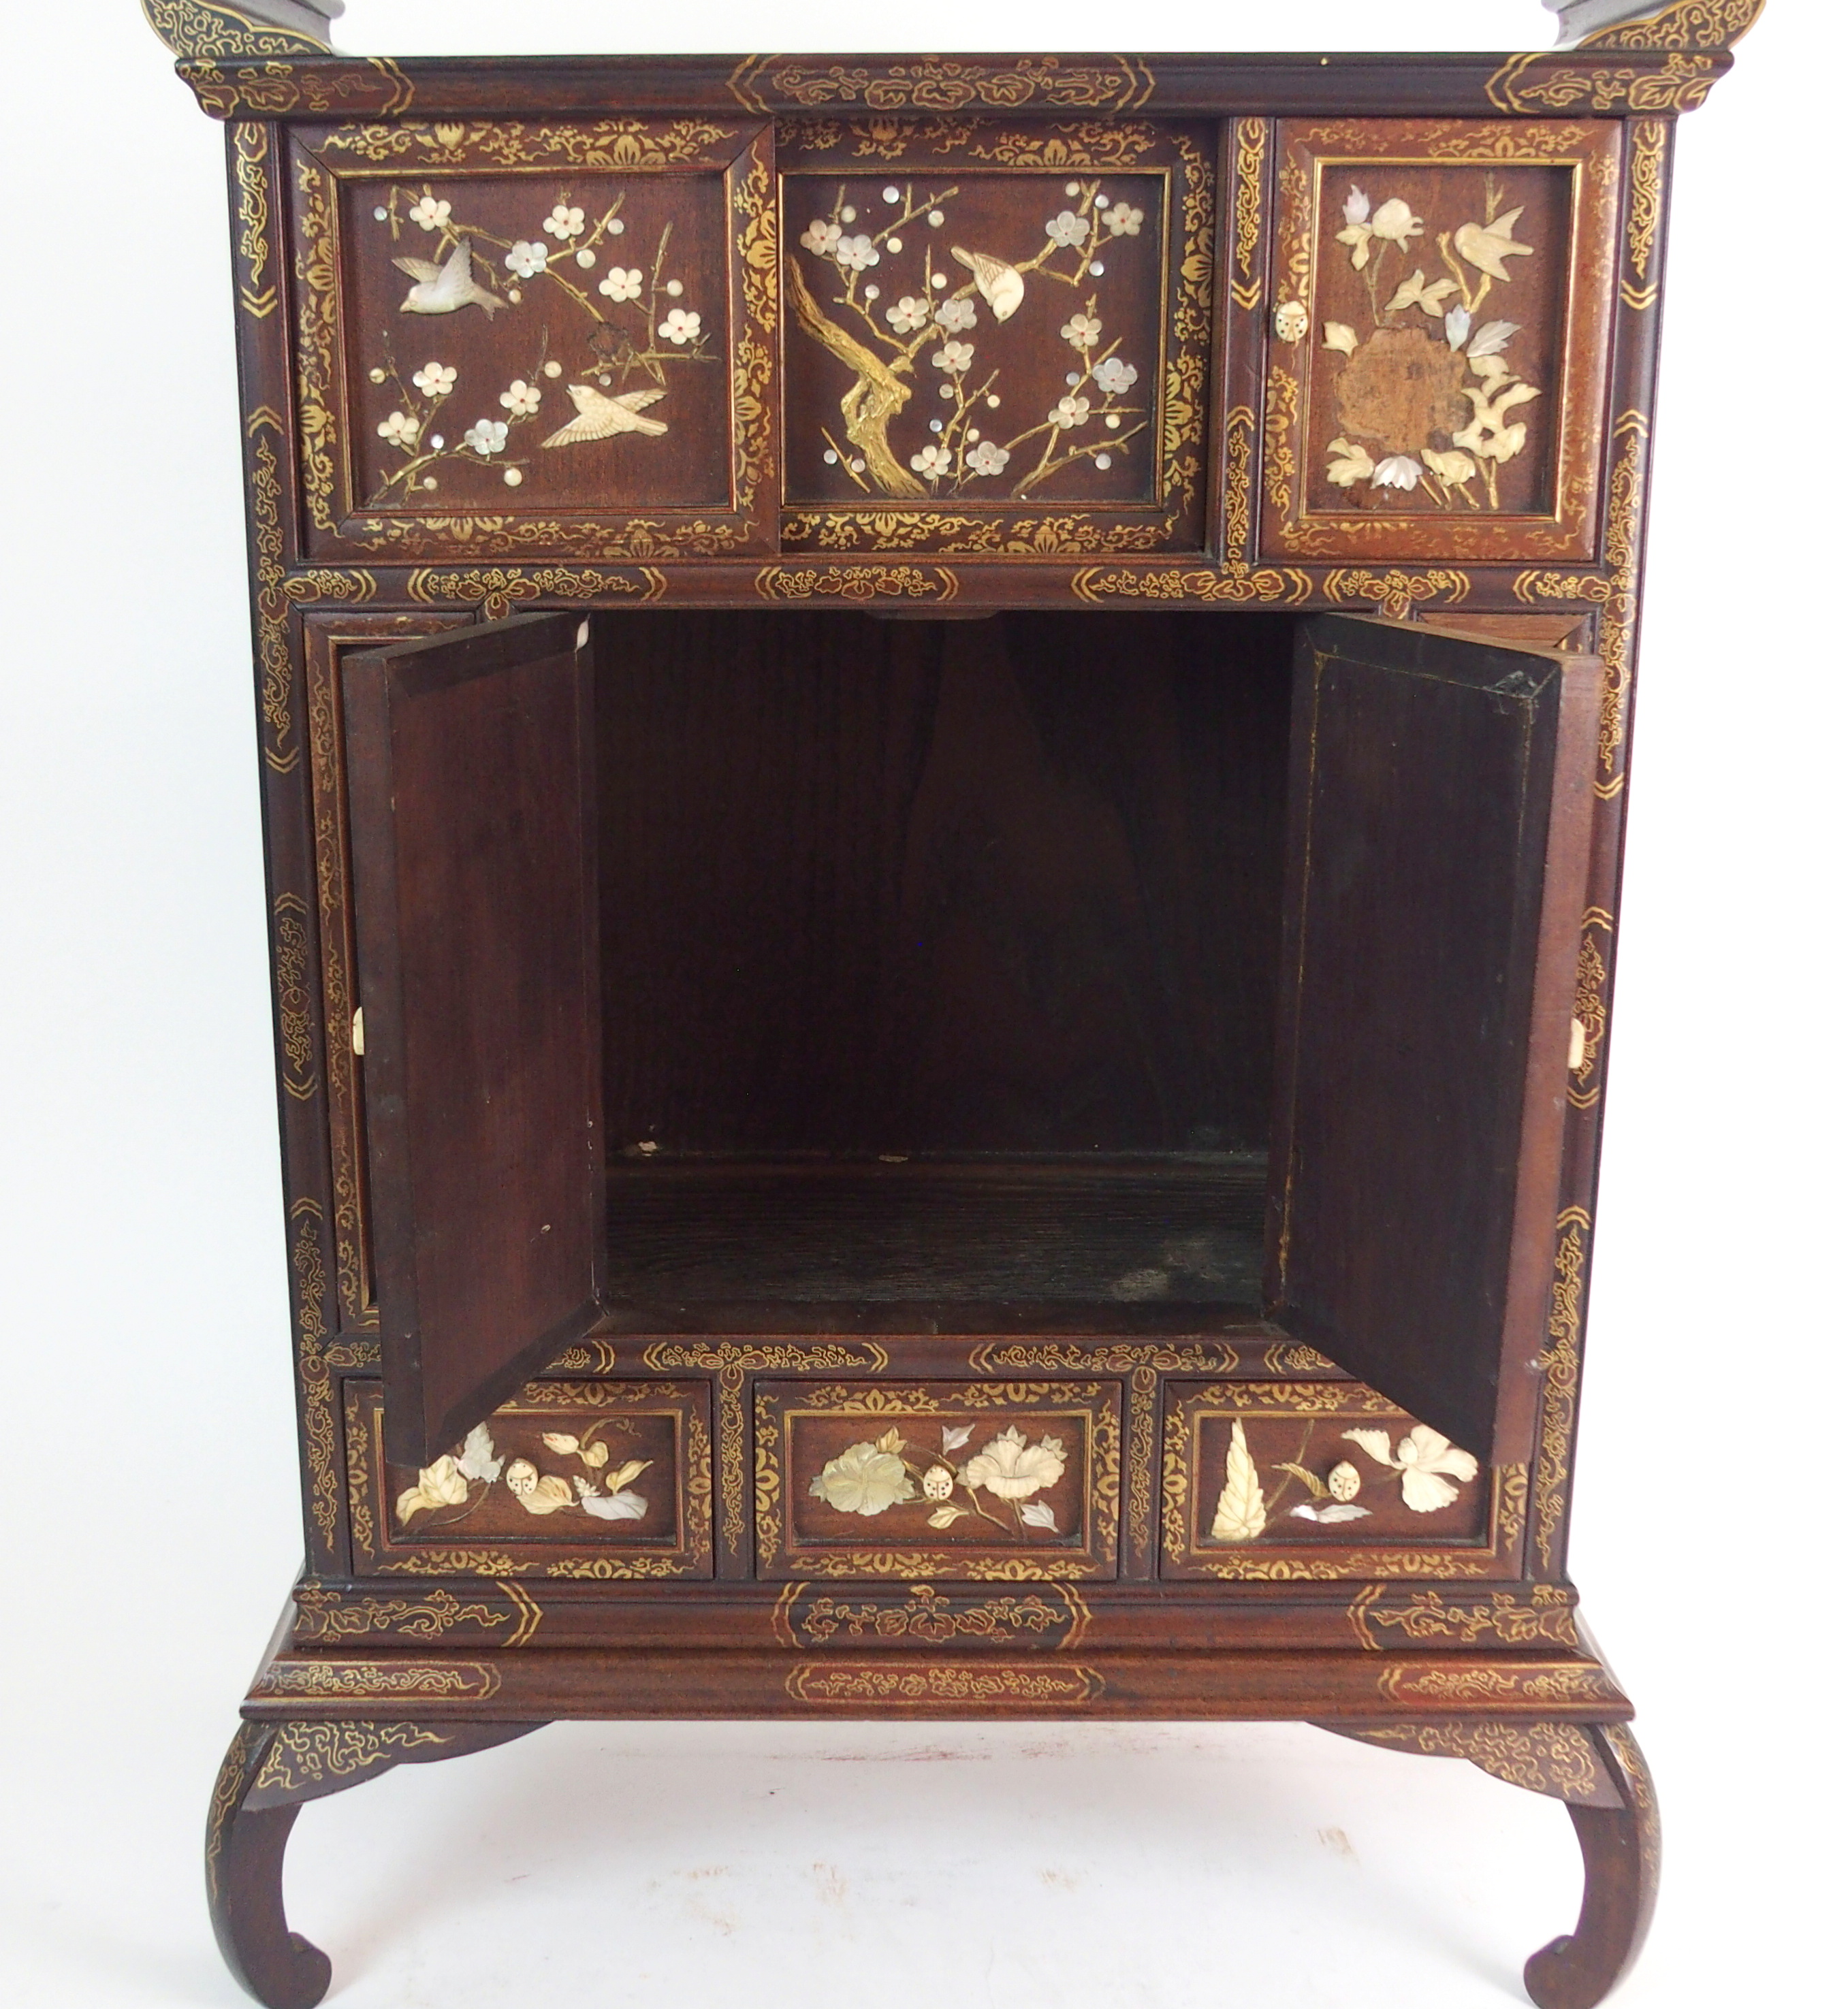 Lot 63 - A JAPANESE SHODANA CABINET with a pair of sliding doors and a hinged door above a pair of doors